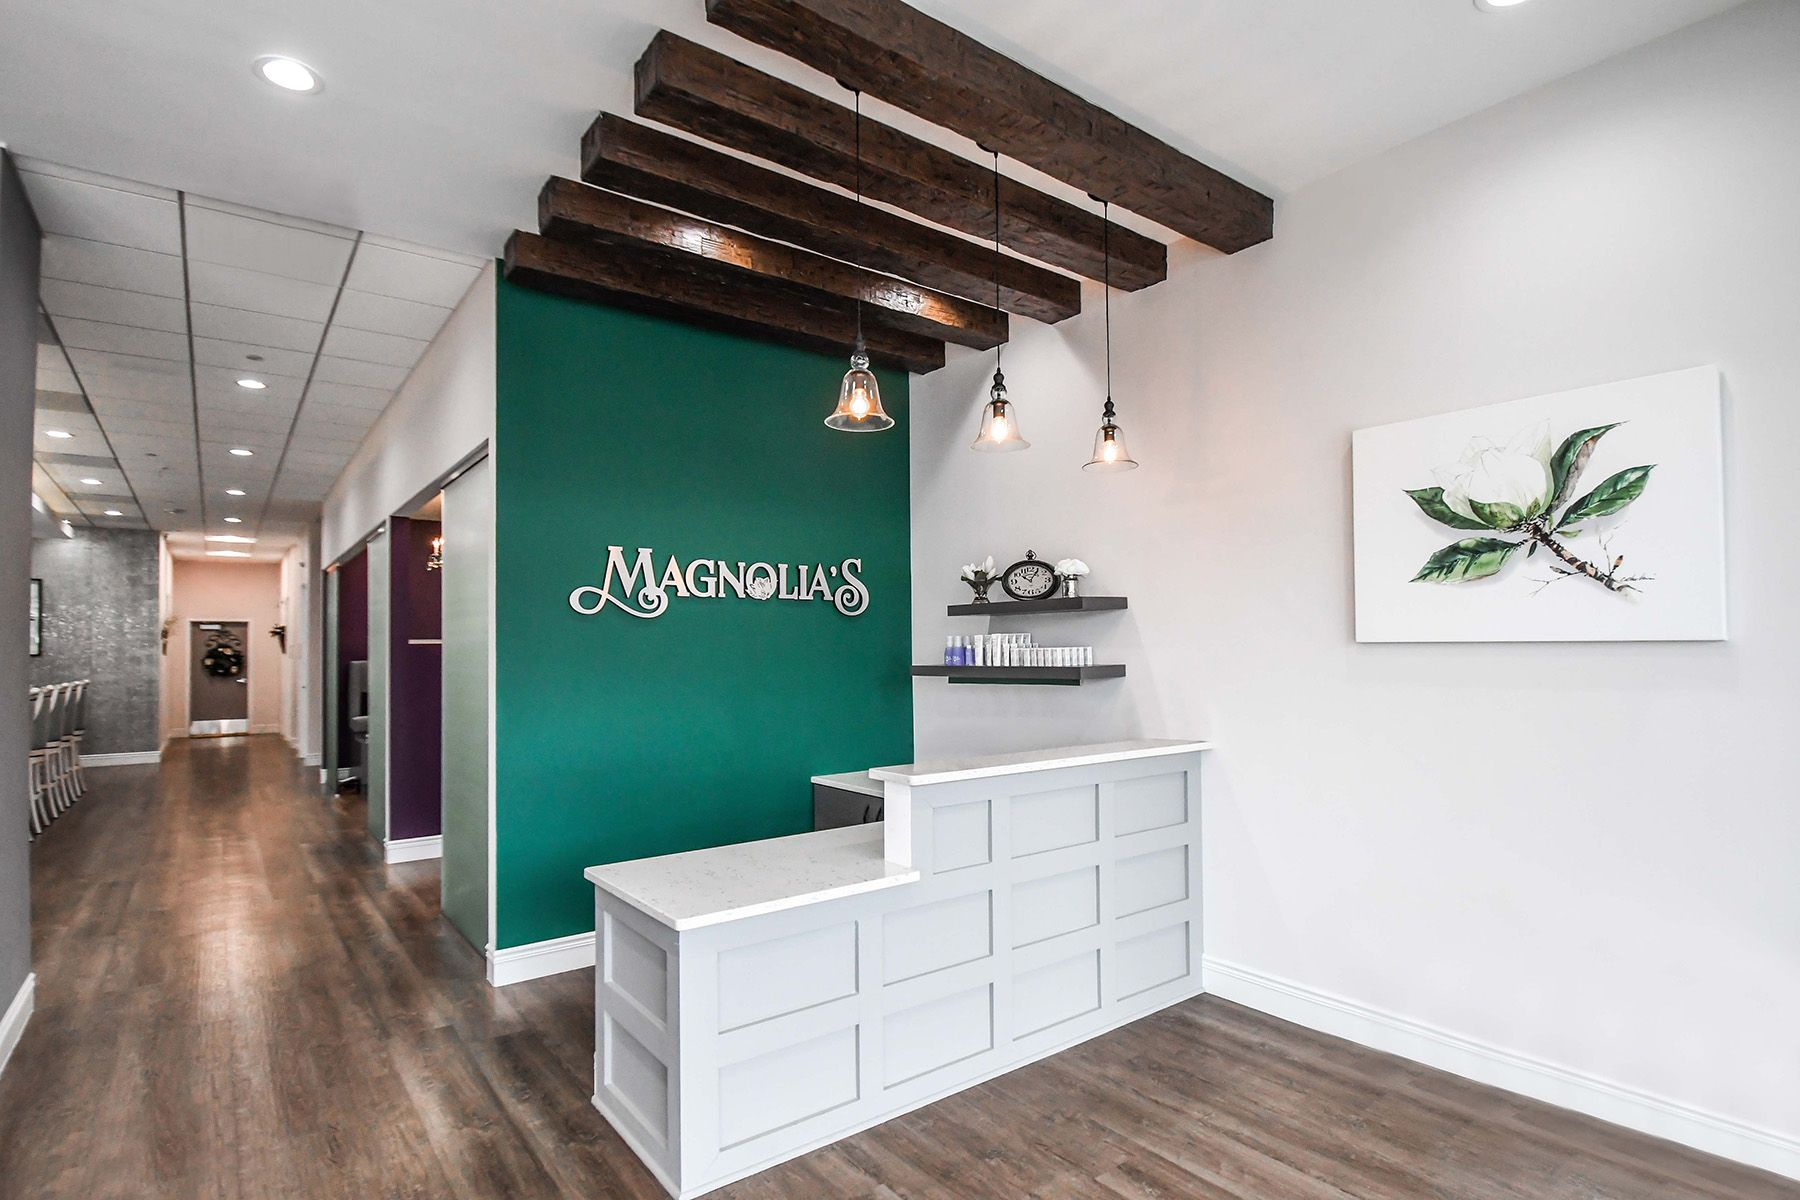 Magnolias Natural Nail Care Clinic architecture, design, and ...